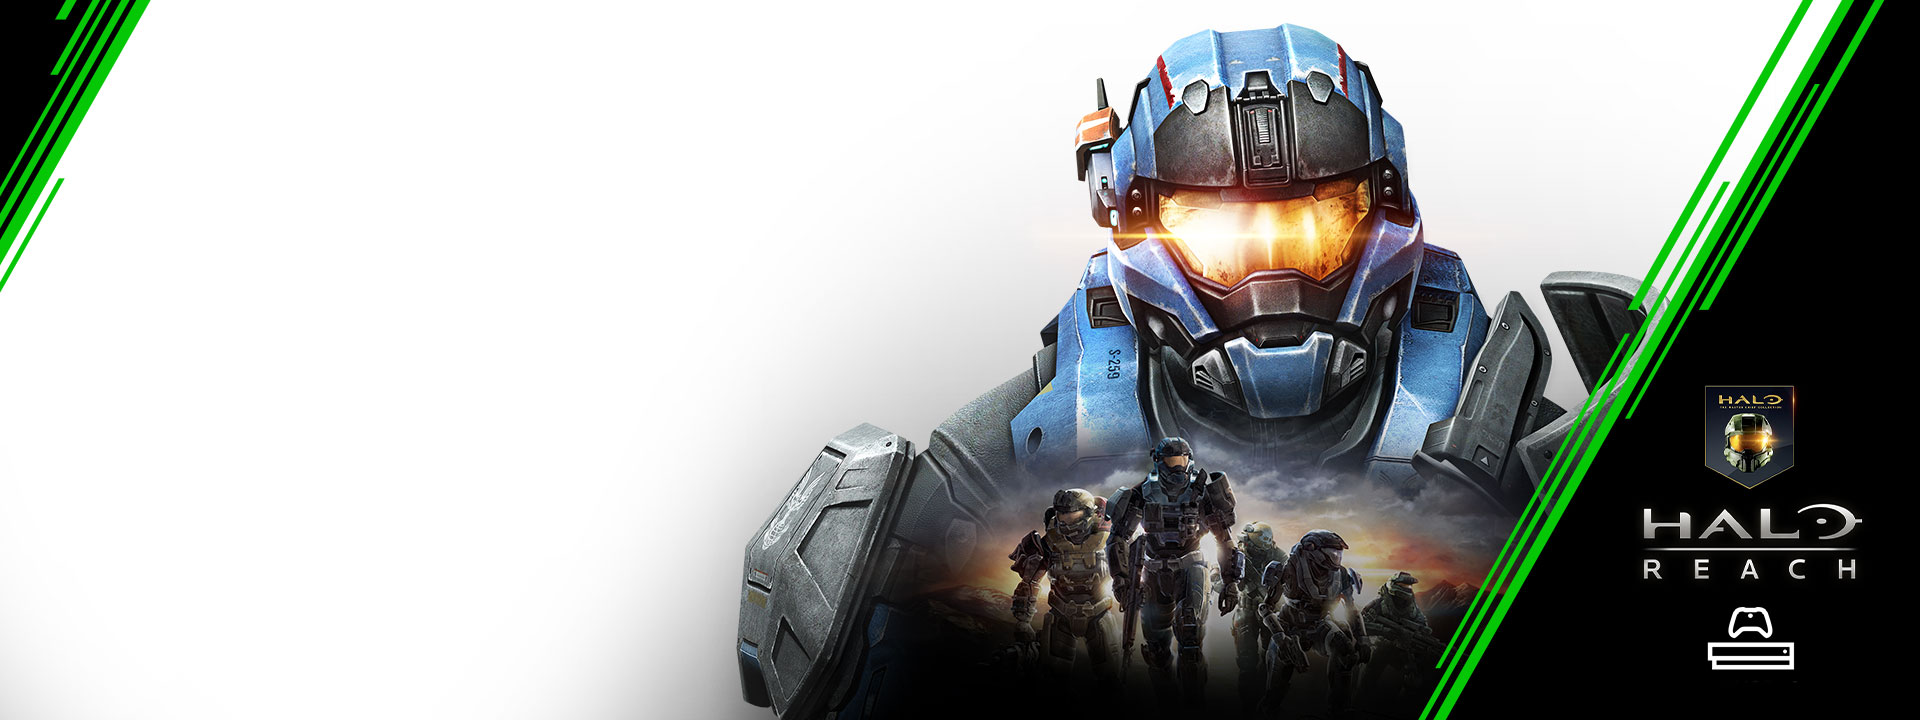 Personagem do Halo com uma cena menor de personagens do halo. Logotipo do Xbox Game Pass, ícone do console, selo do Halo, Halo Reach.